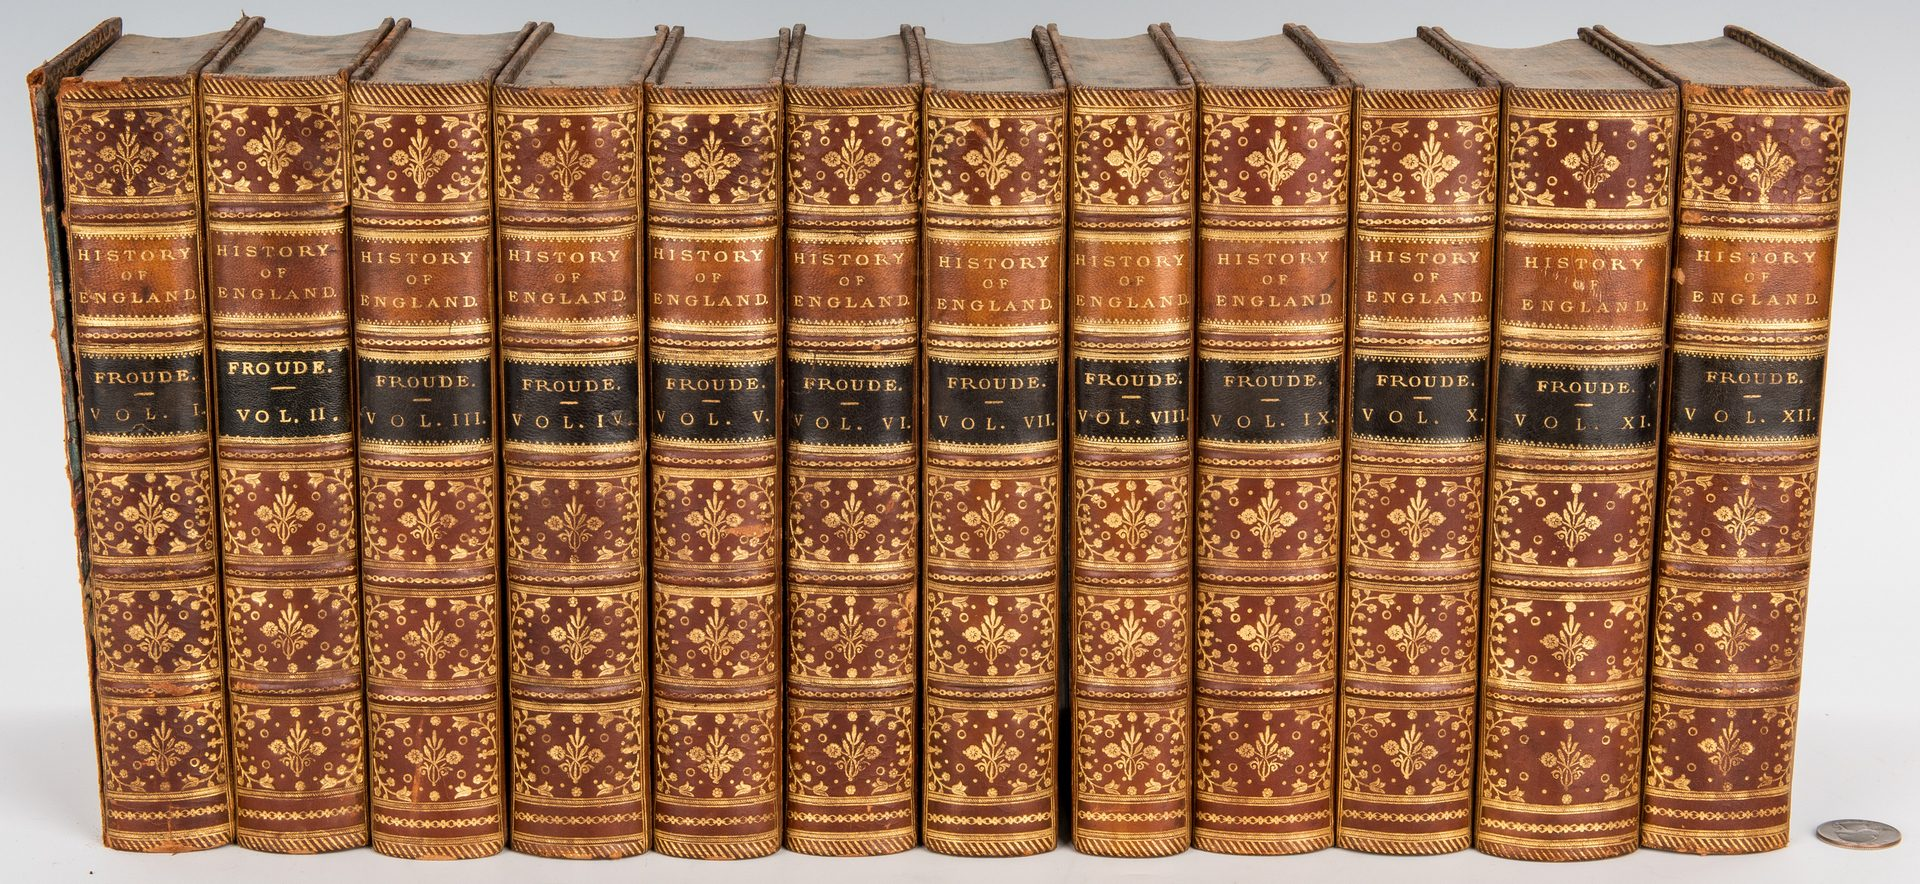 Lot 286: Froude's History of England, 12 Vols., 1870